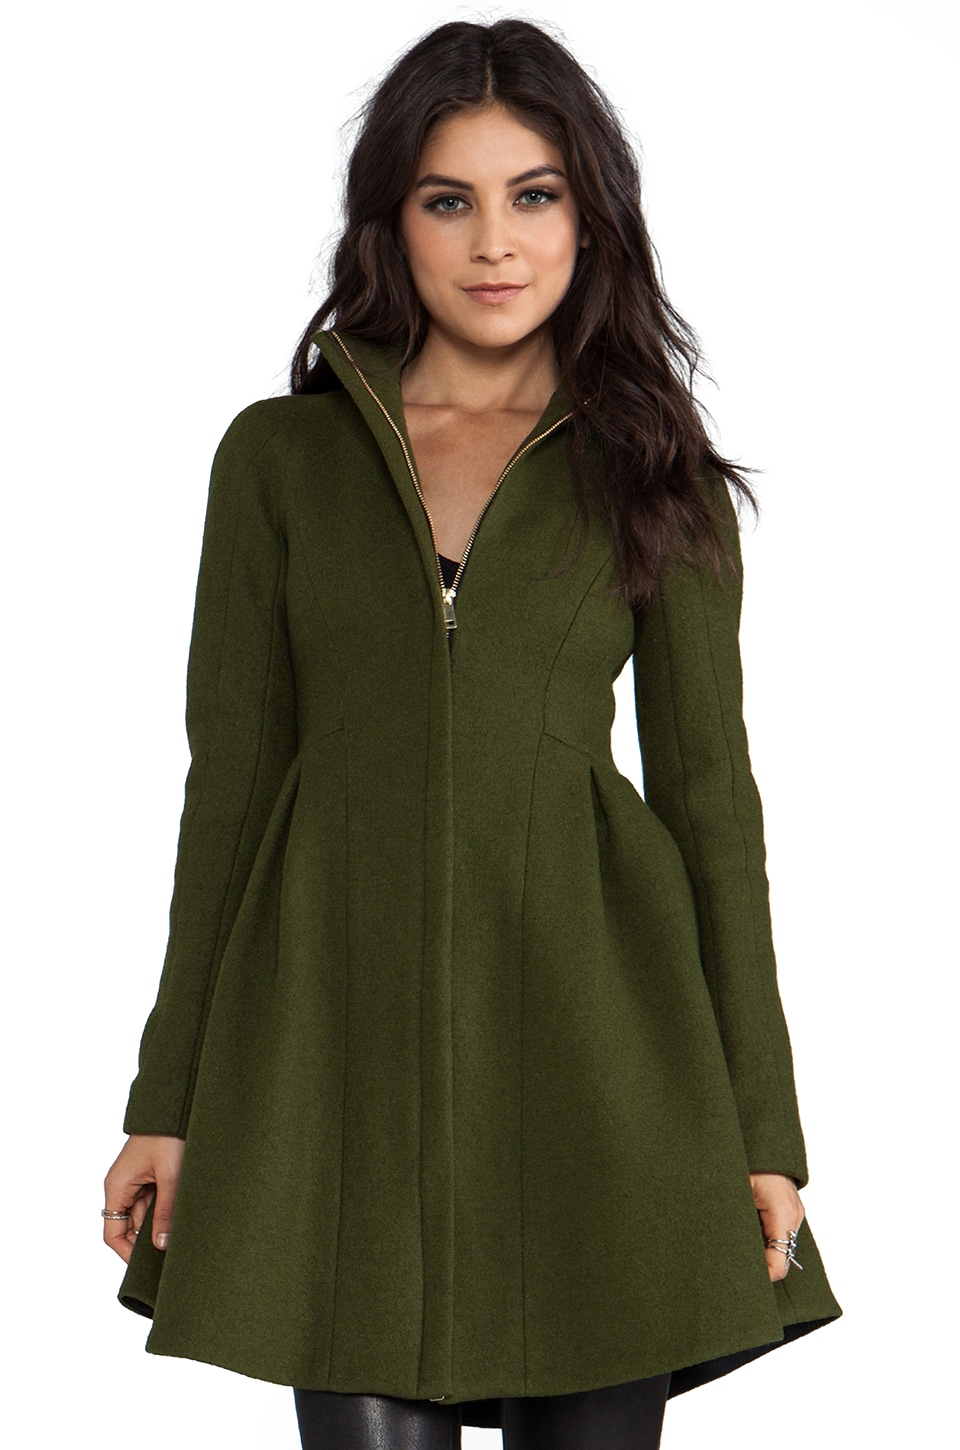 Nanette Lepore RUNWAY Astronomer Coats Skyscape Coat in Olive